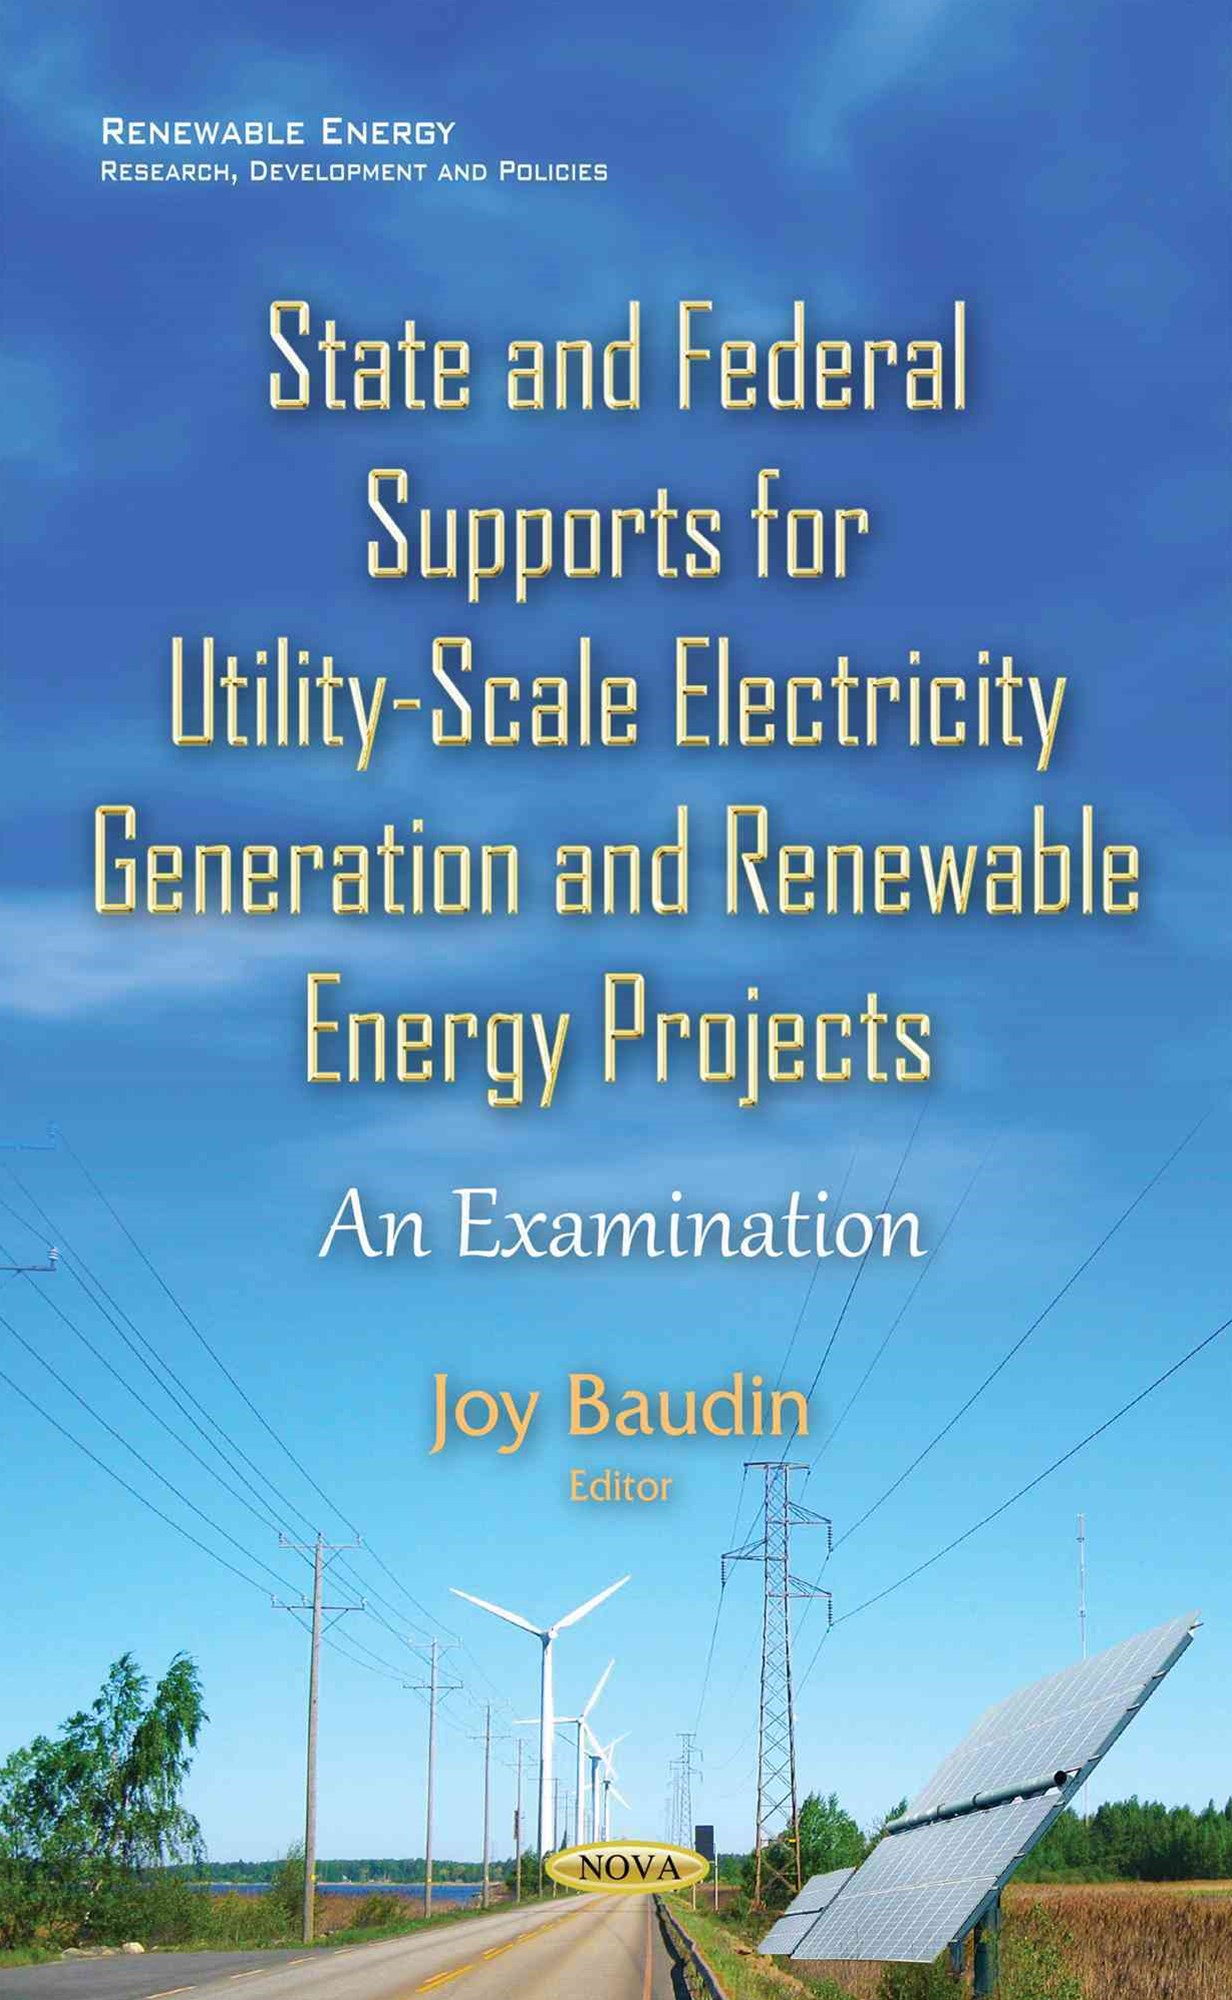 State and Federal Supports for Utility-Scale Electricity Generation and Renewable Energy Projects